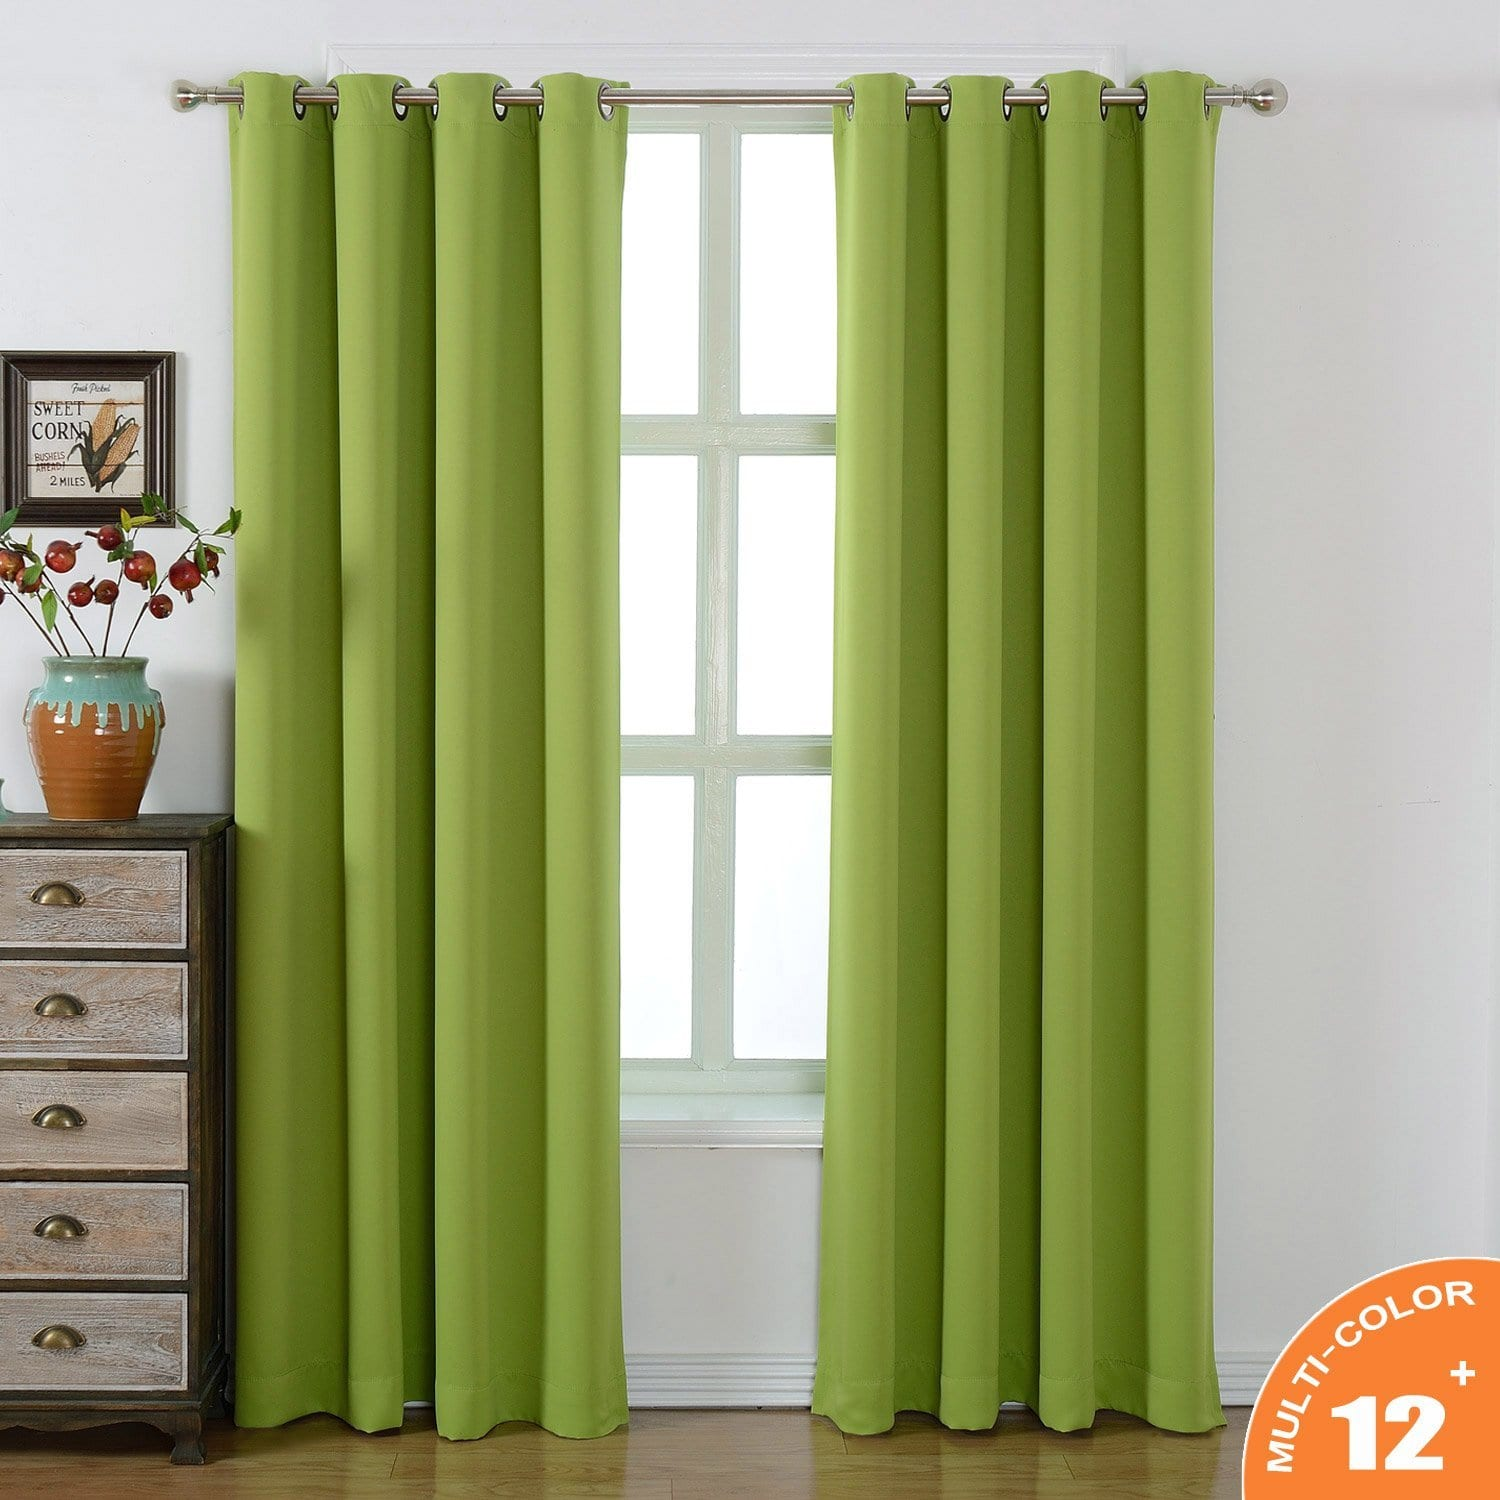 Most List Of Best Sliding Gl Door Curtains With Reviews Top 10 Review